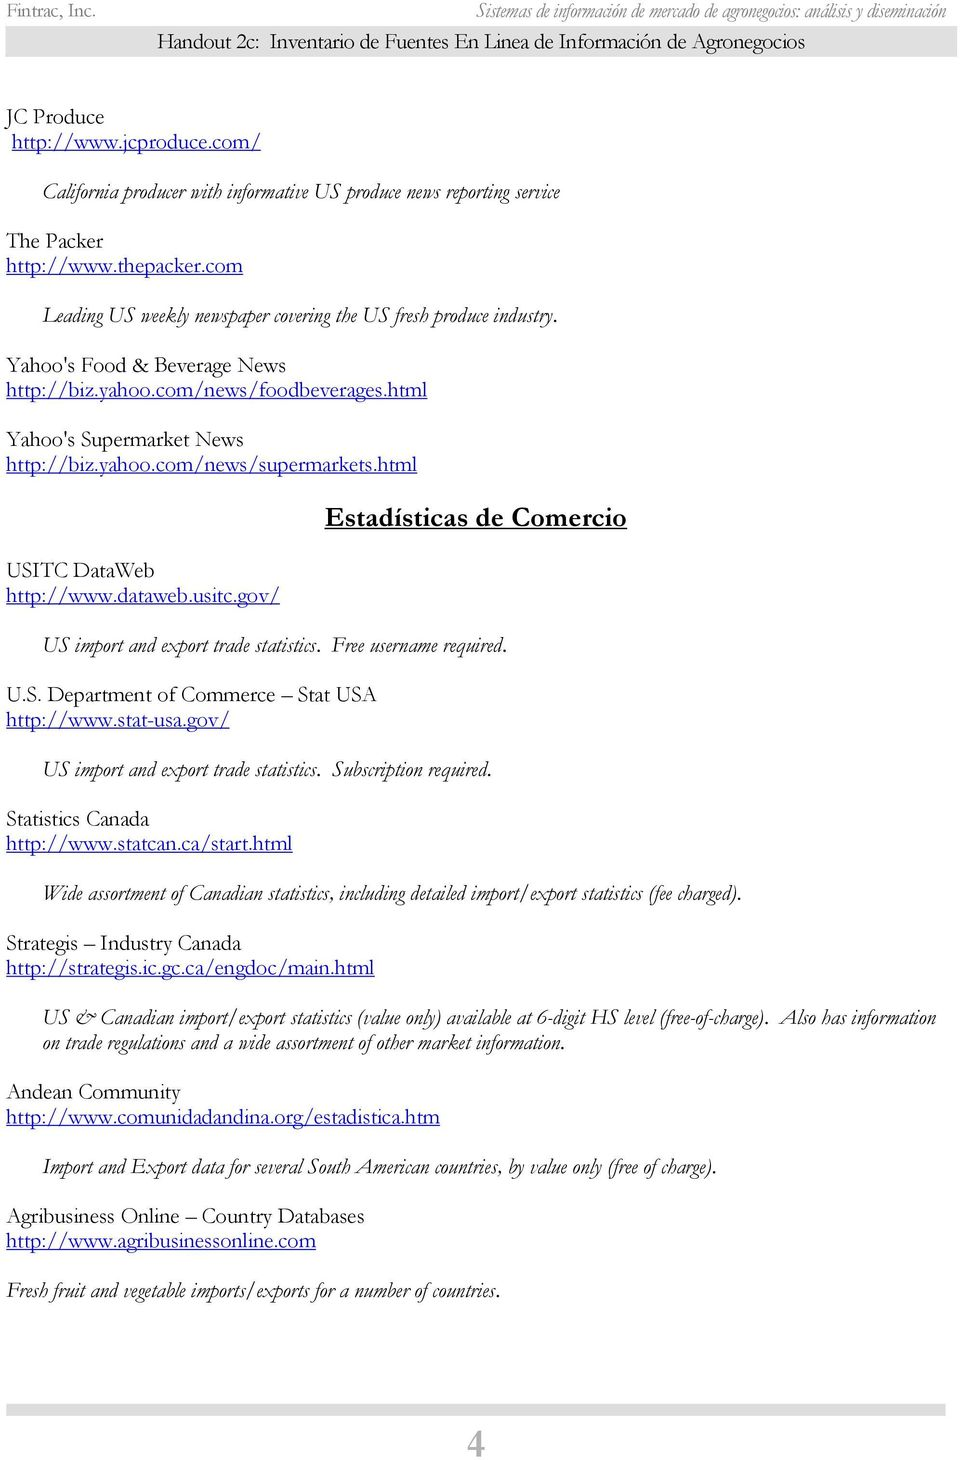 html USITC DataWeb http://www.dataweb.usitc.gov/ Estadísticas de Comercio US import and export trade statistics. Free username required. U.S. Department of Commerce Stat USA http://www.stat-usa.